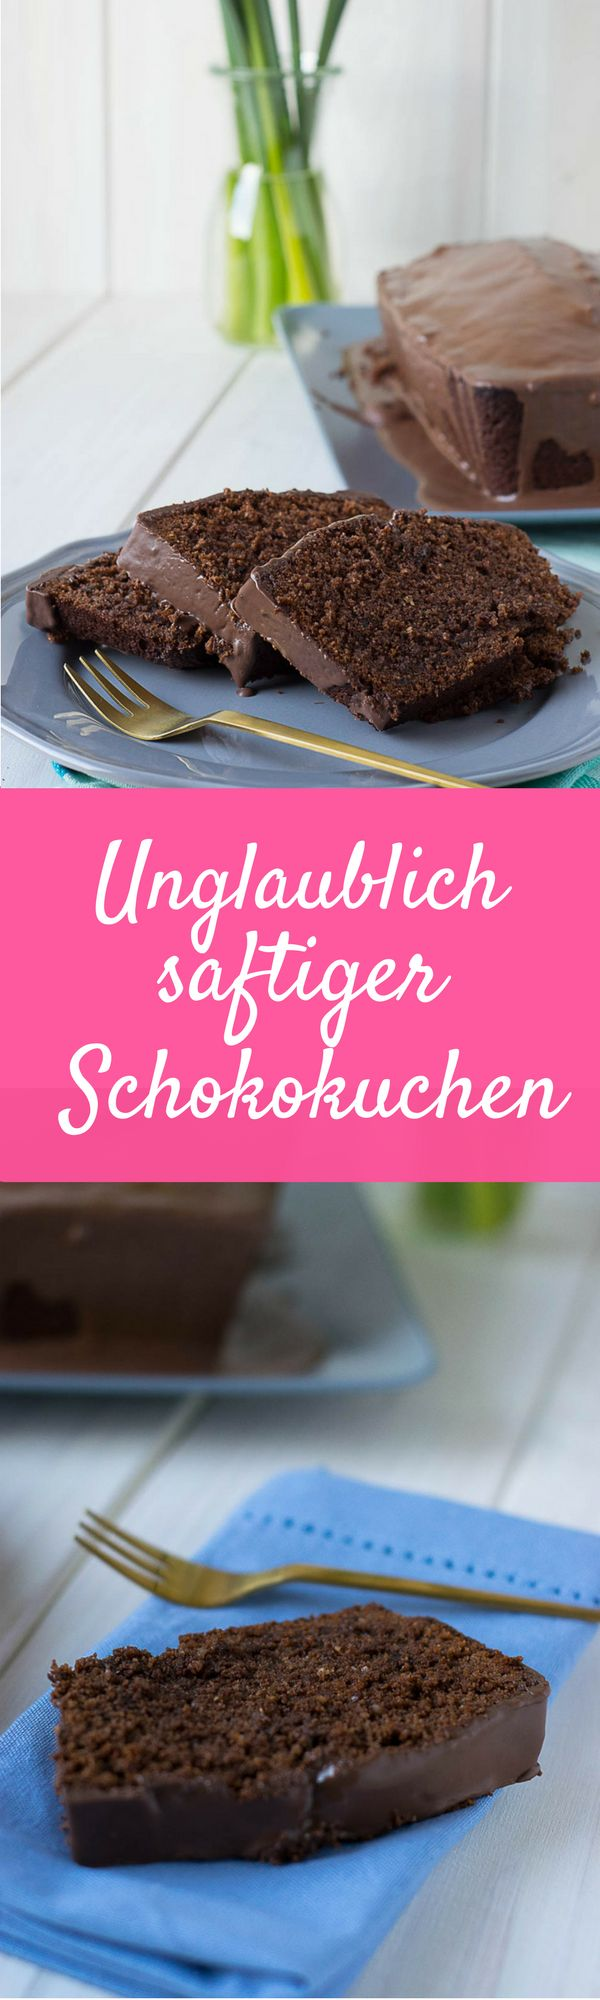 Death by Chocolate - super saftiger Schokoladenkuchen (Bake Cheesecake)